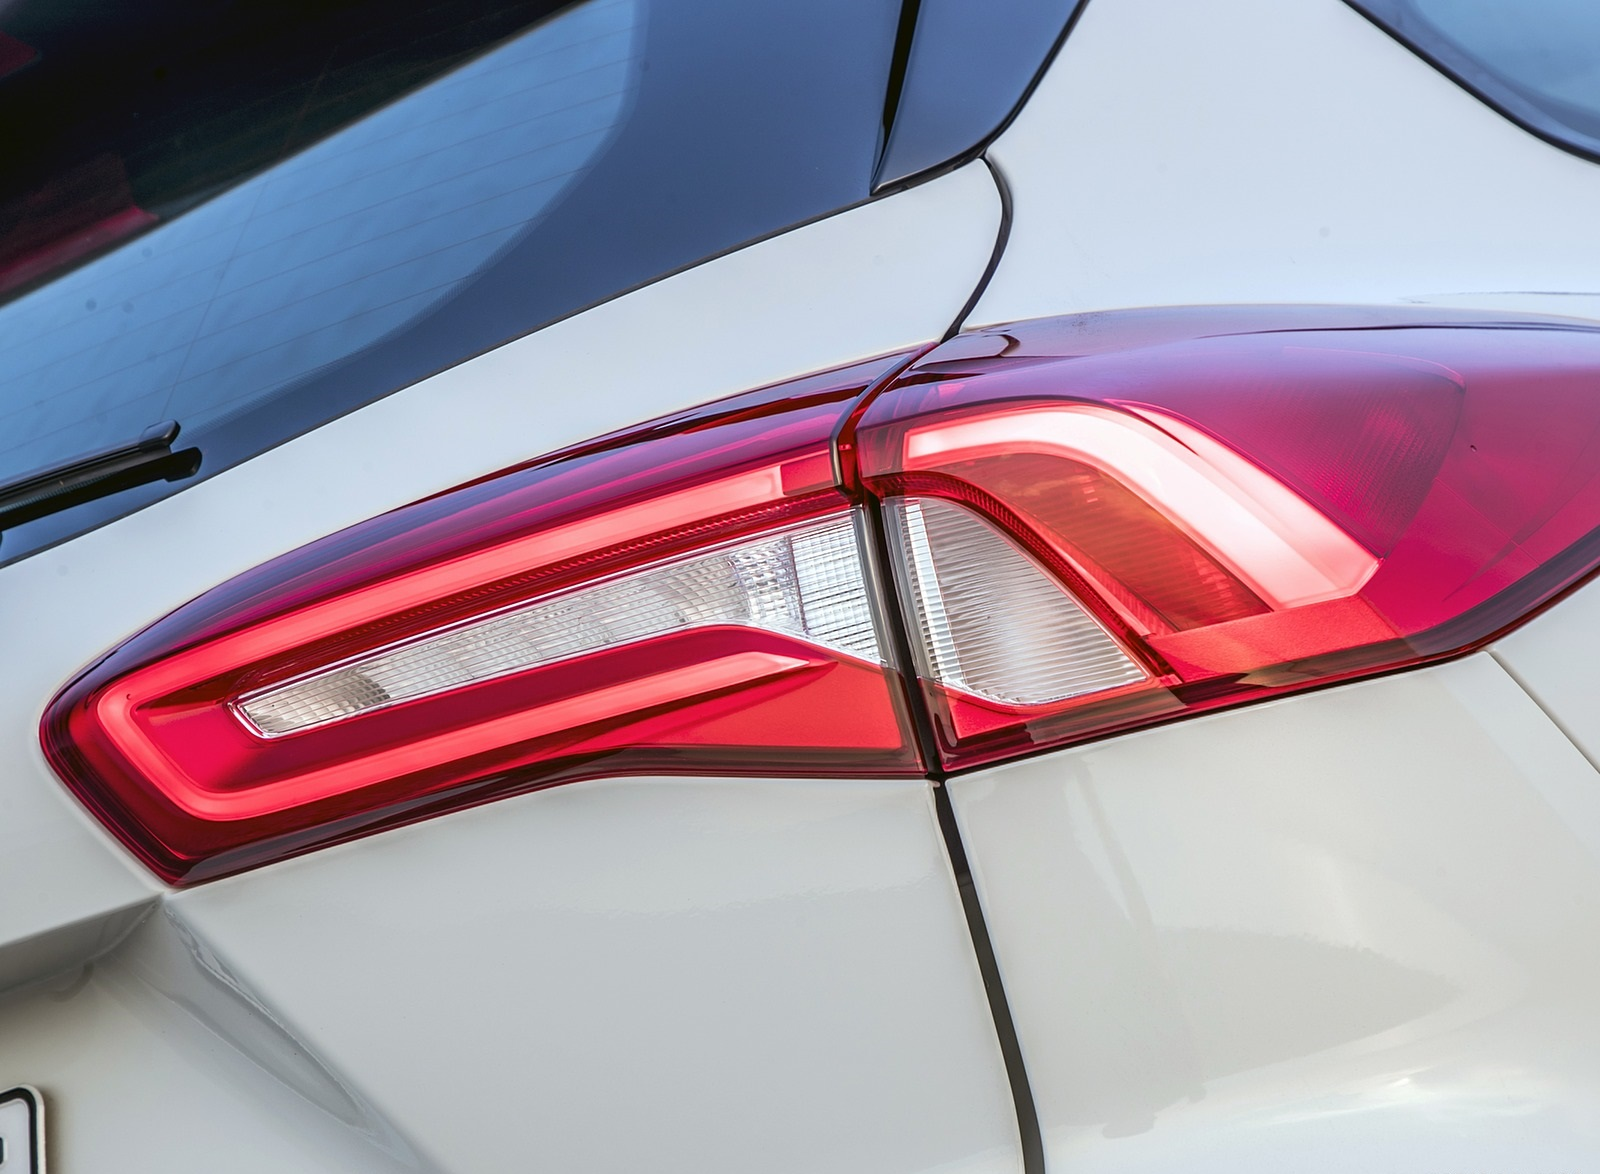 2019 Ford Focus Active Wagon (Color: Metropolis White) Tail Light Wallpapers #26 of 118